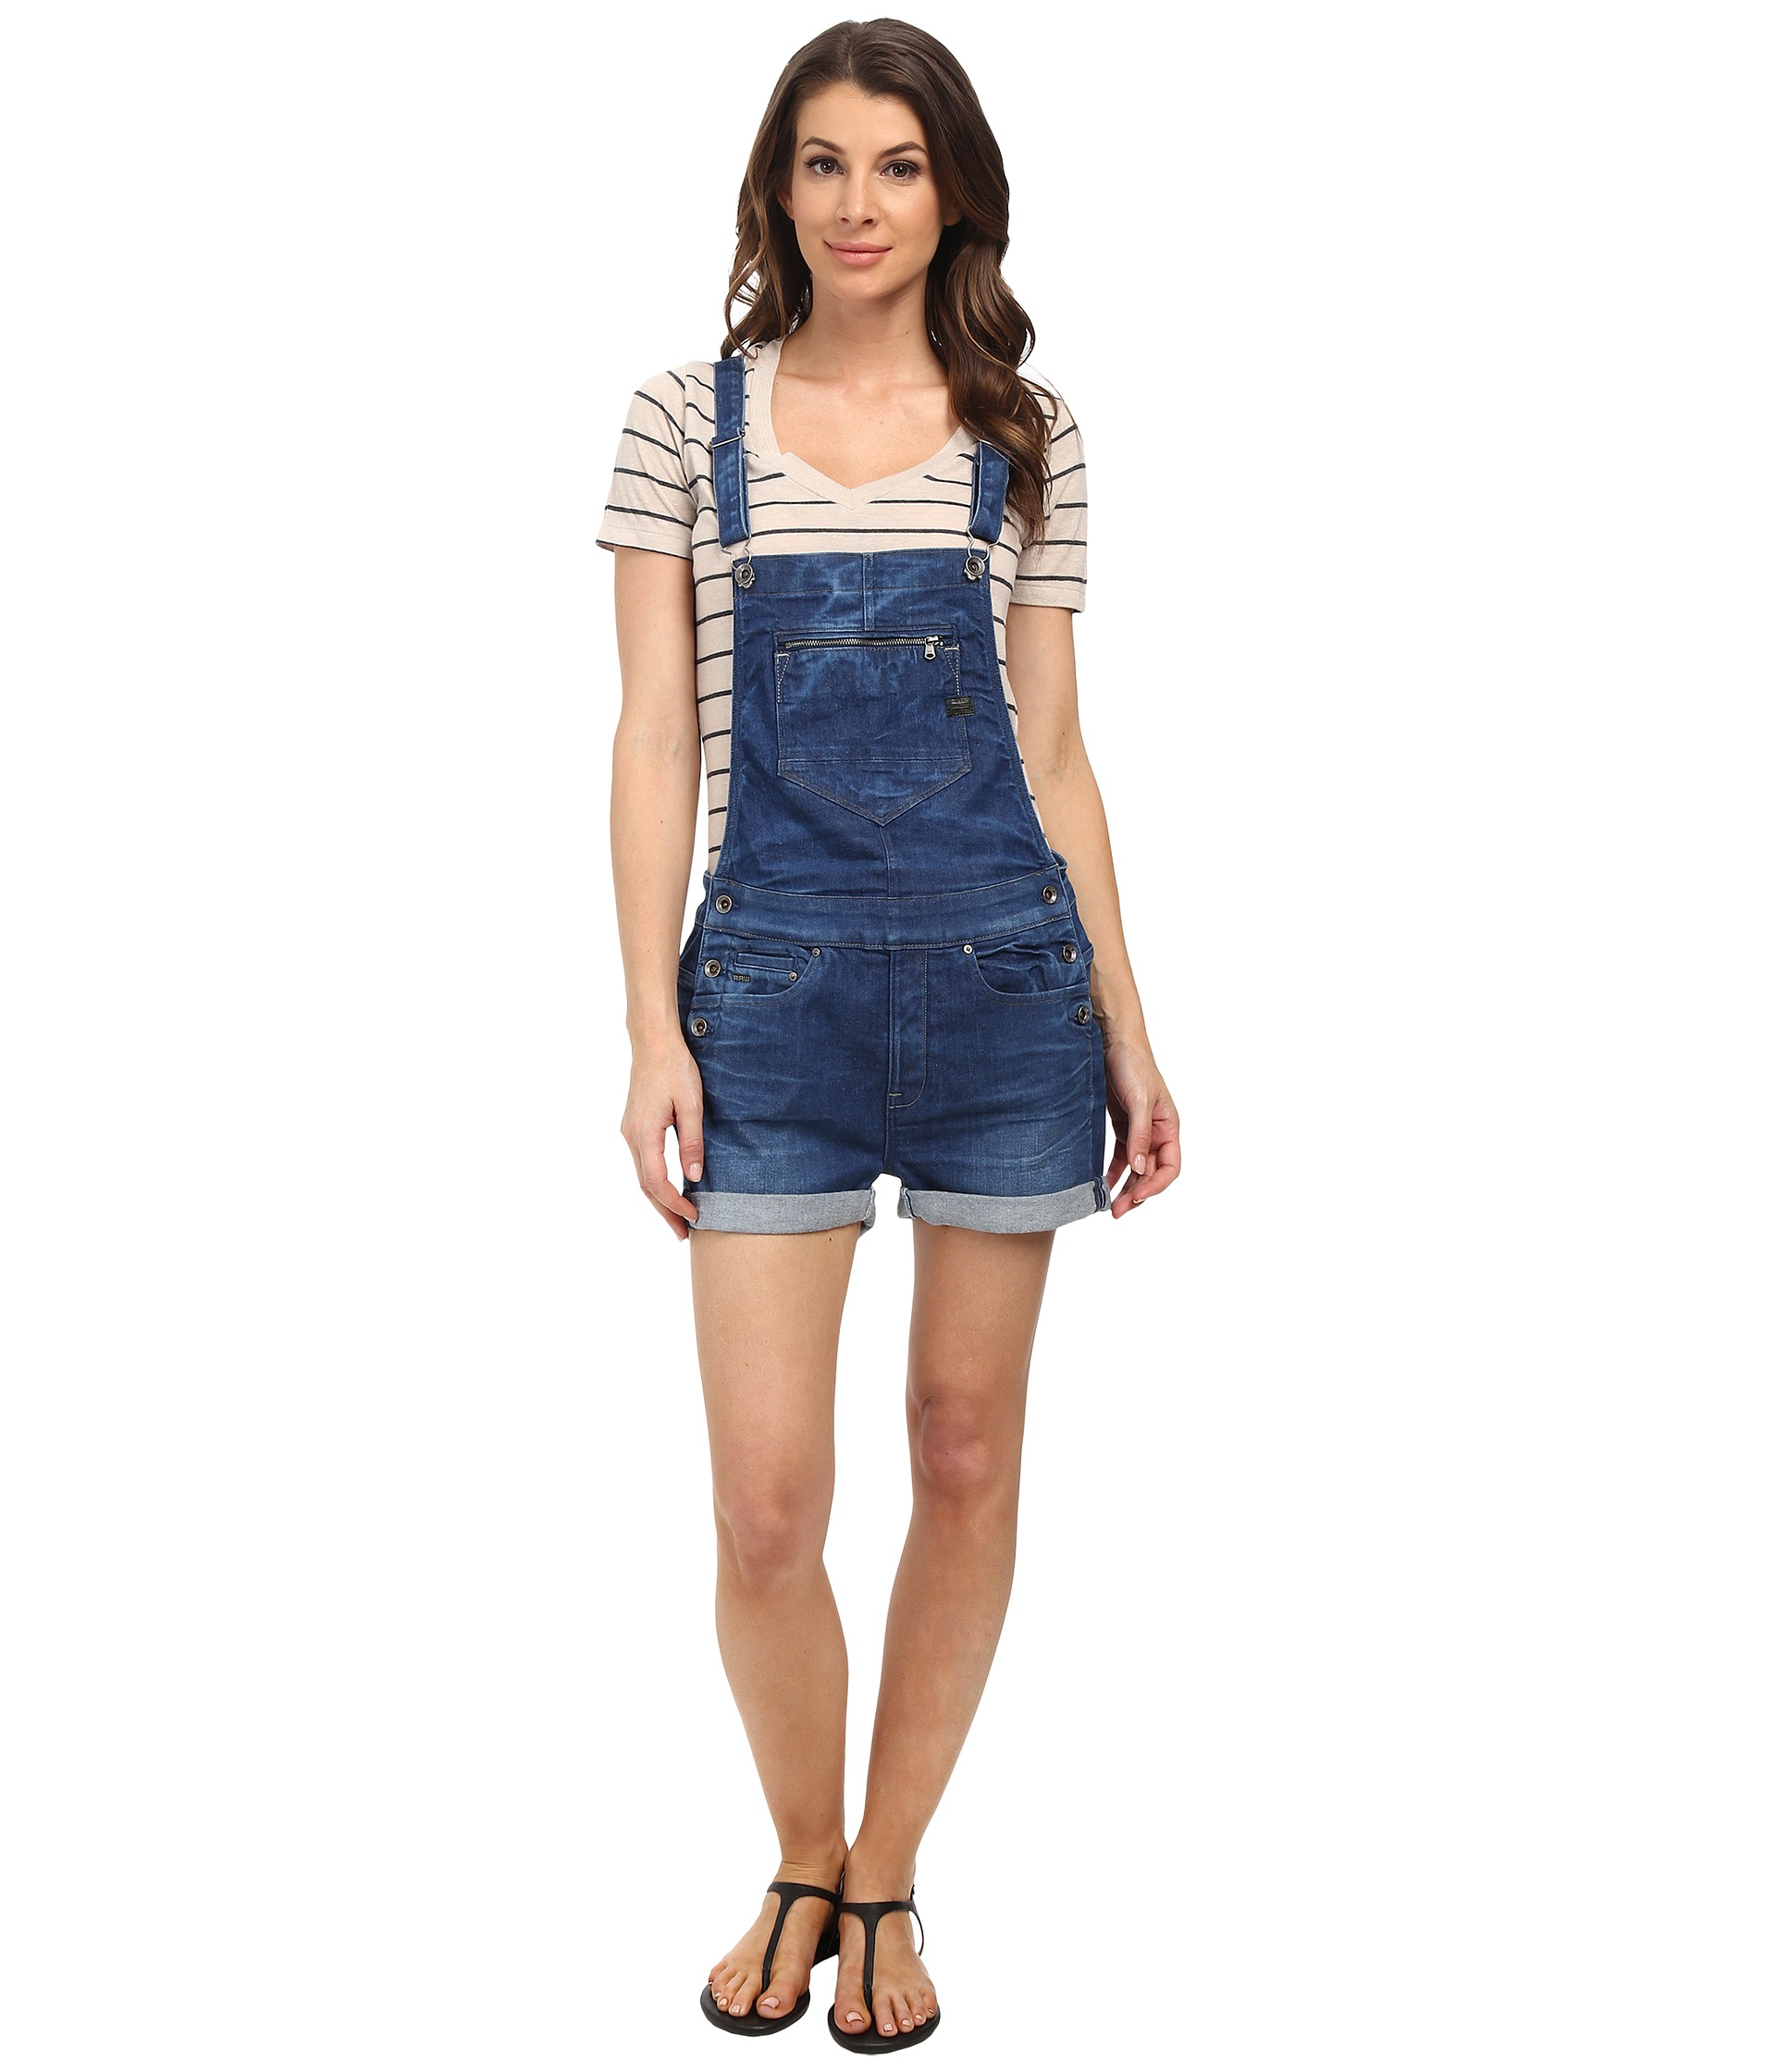 121a31201ee1c Lyst - G-Star Raw Midge Overall Short Salopette in Blue